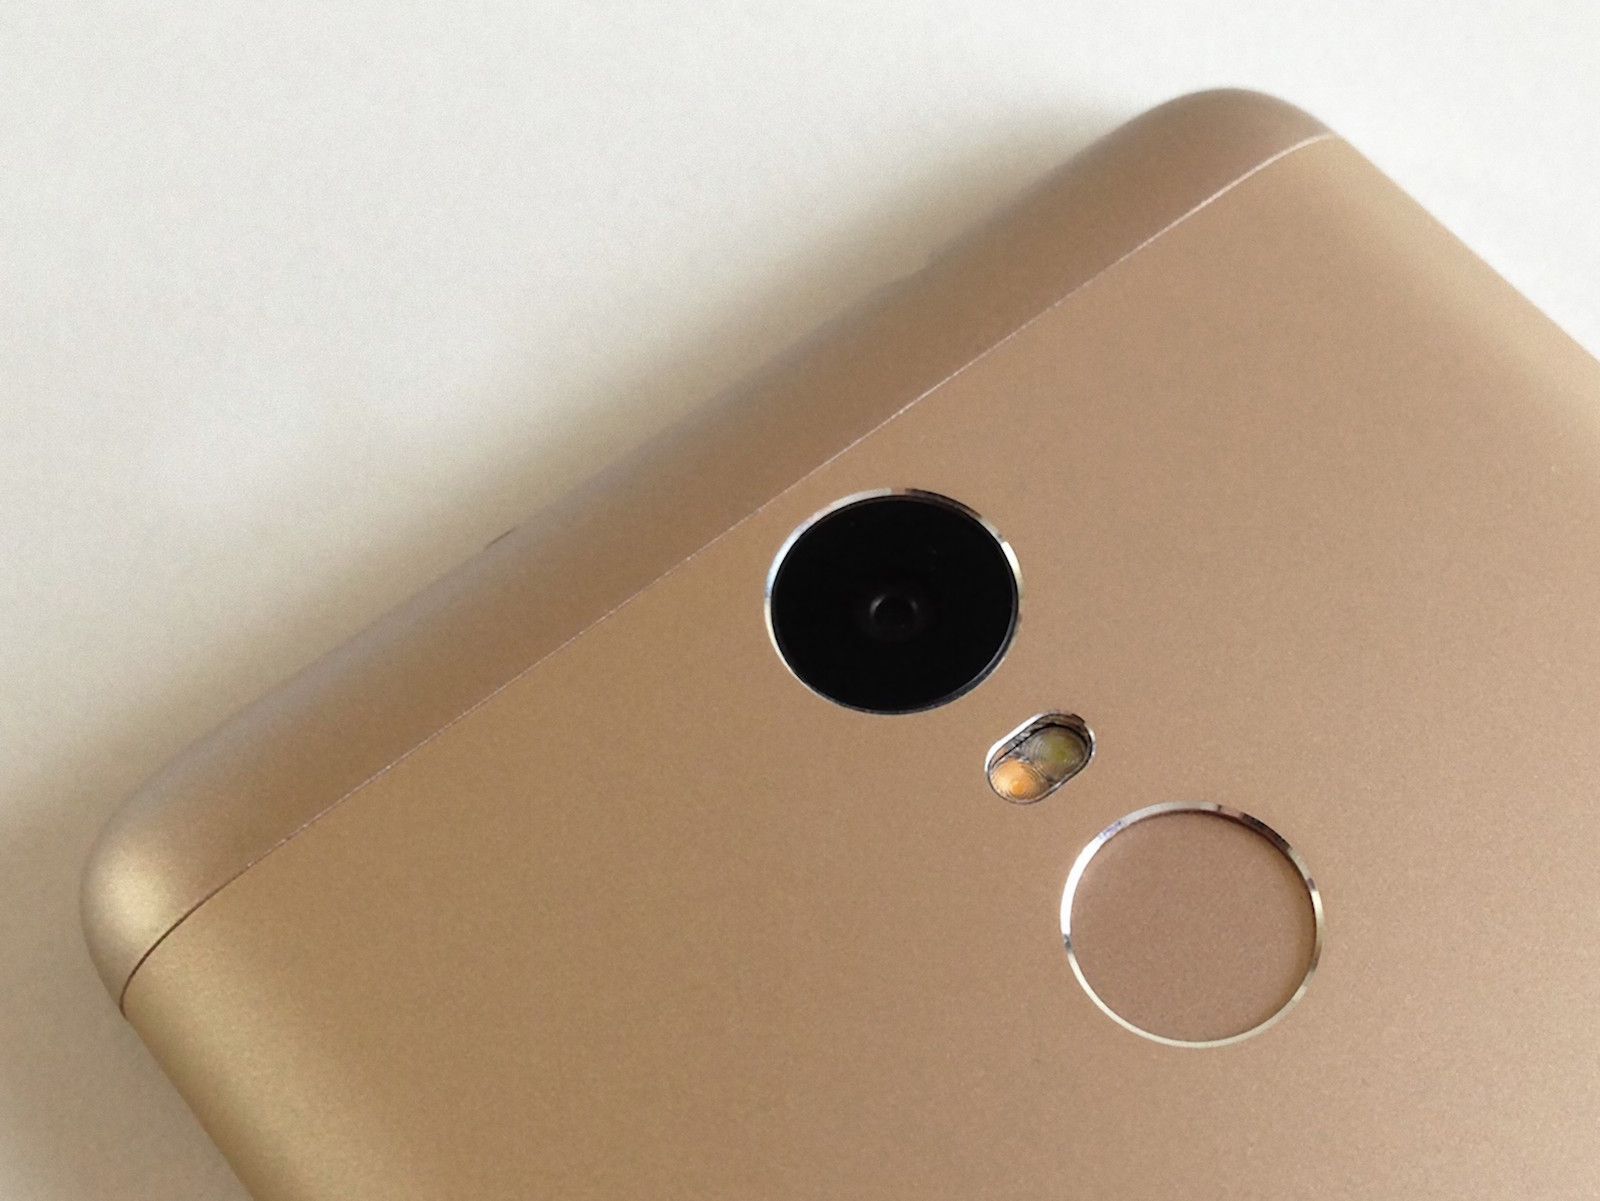 xiaomi-redmi-note-3-pro-review-camera